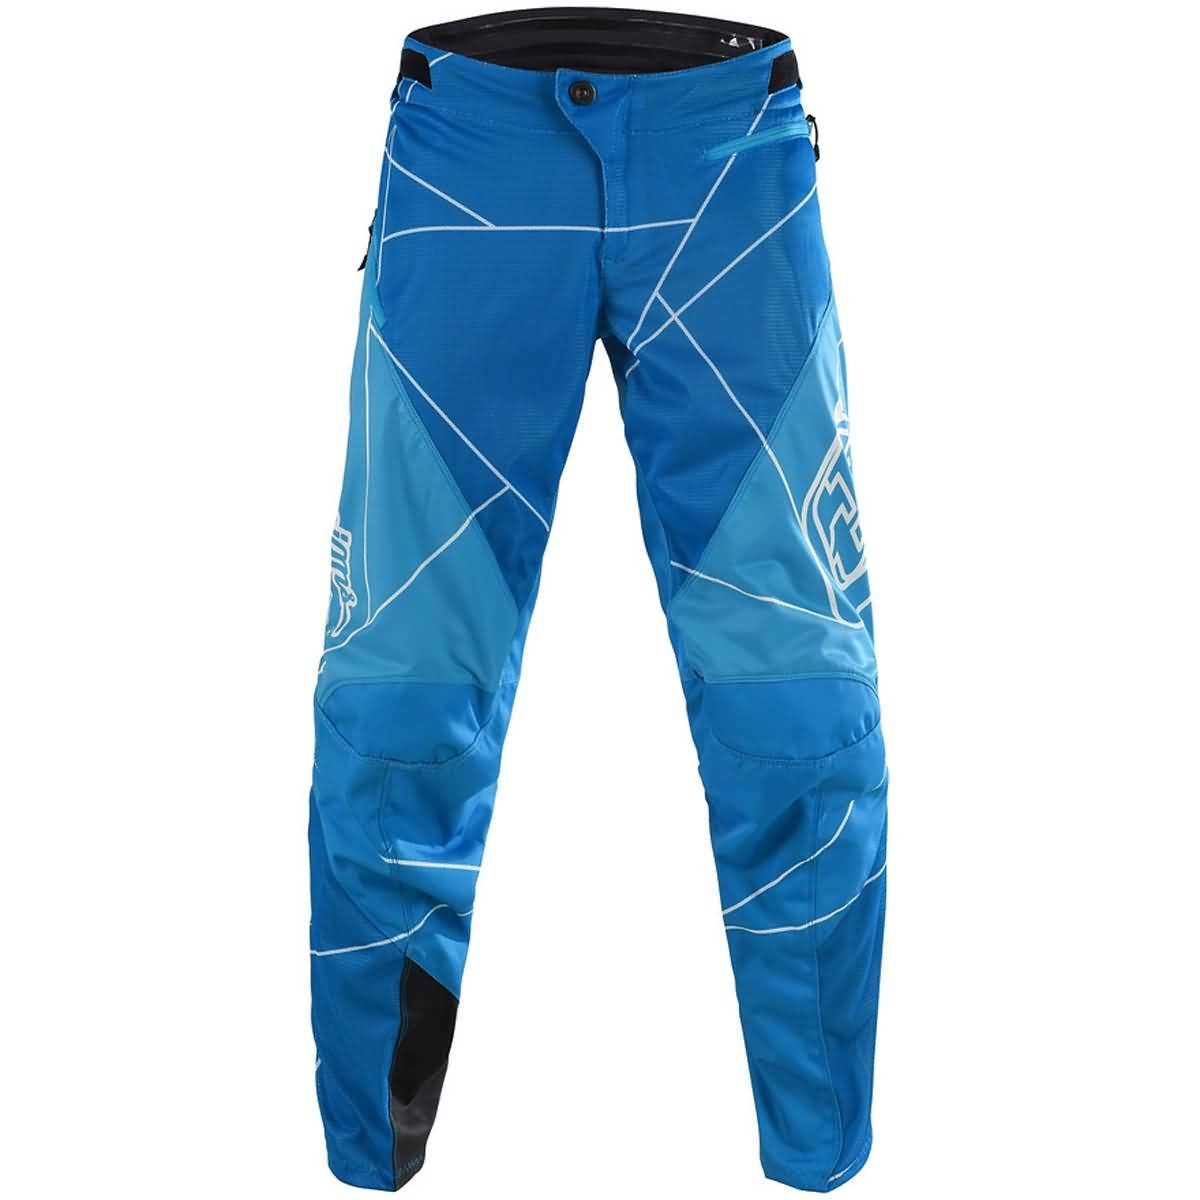 Troy Lee Designs Sprint Metric Youth Off-Road BMX Cycling Pants - Ocean/White / 18